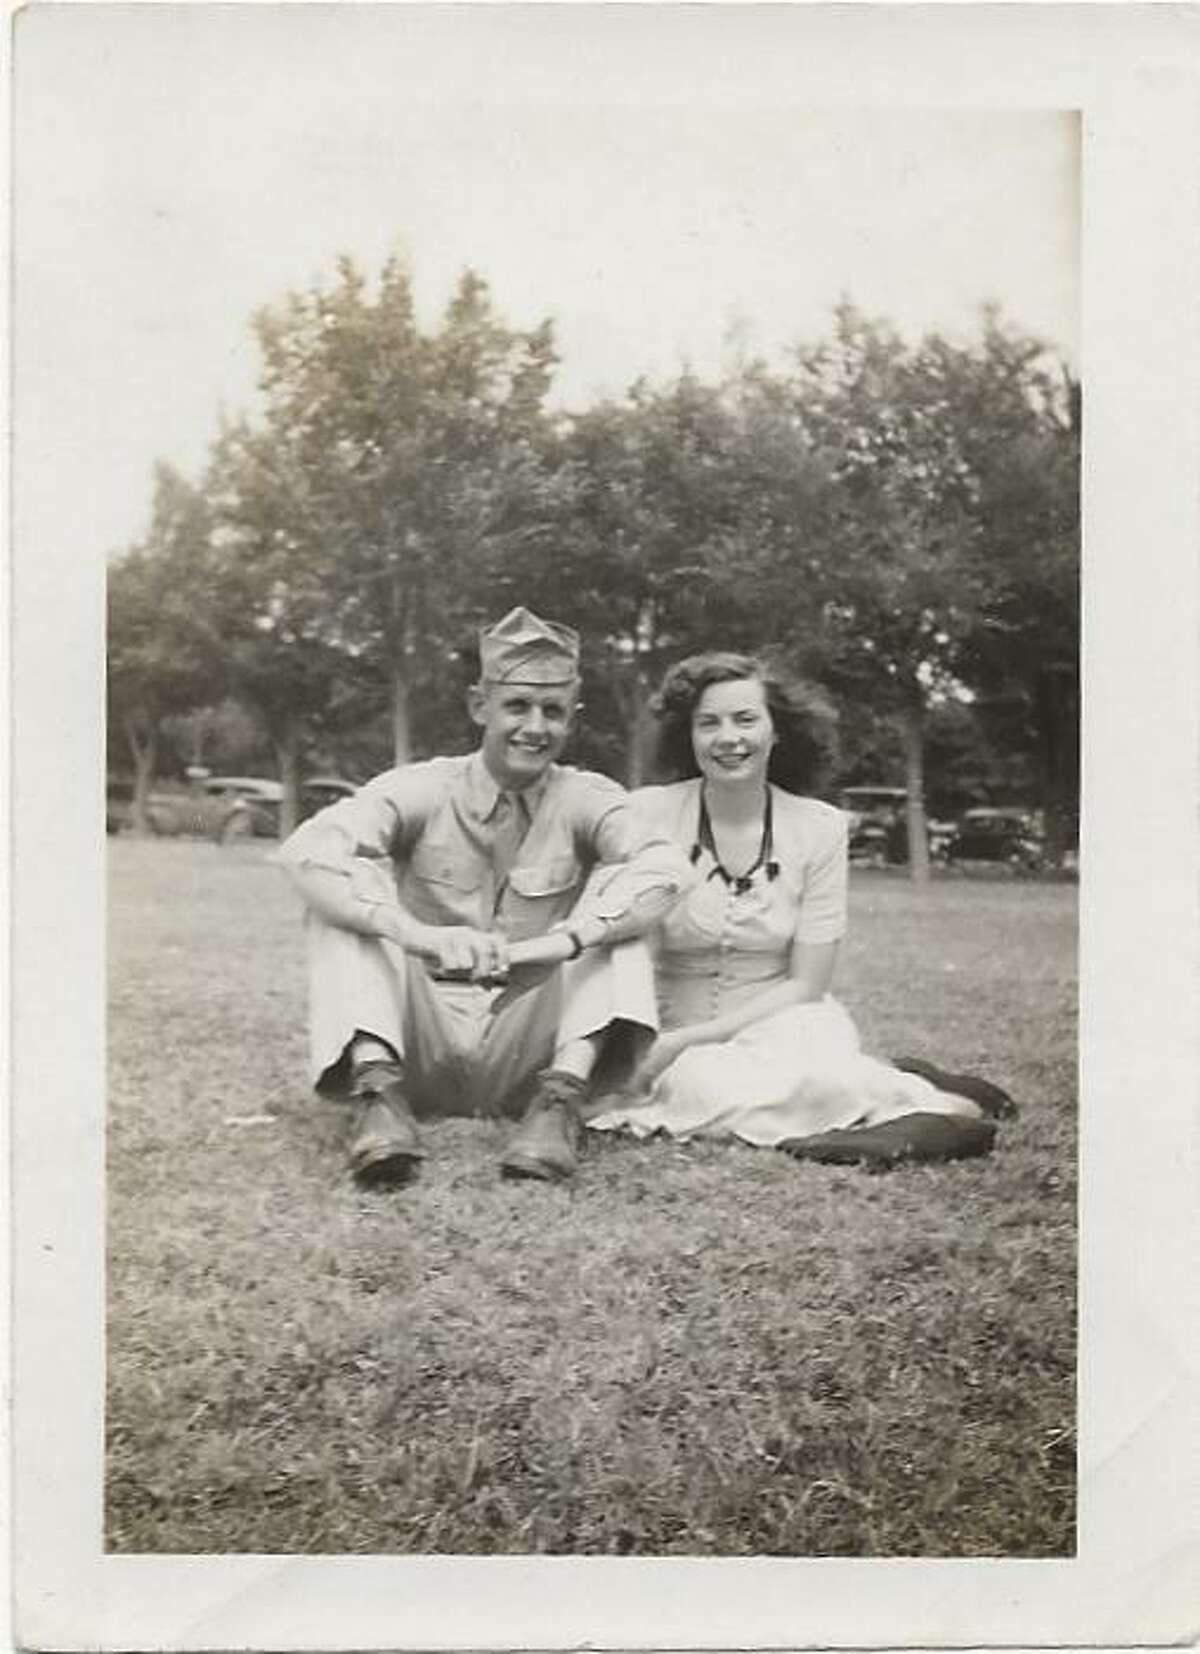 Eugene and Evelyn Reed in 1942 It was most likely taken at a park in Plainview according to Peggy Williams Bain, Evelyn's niece.